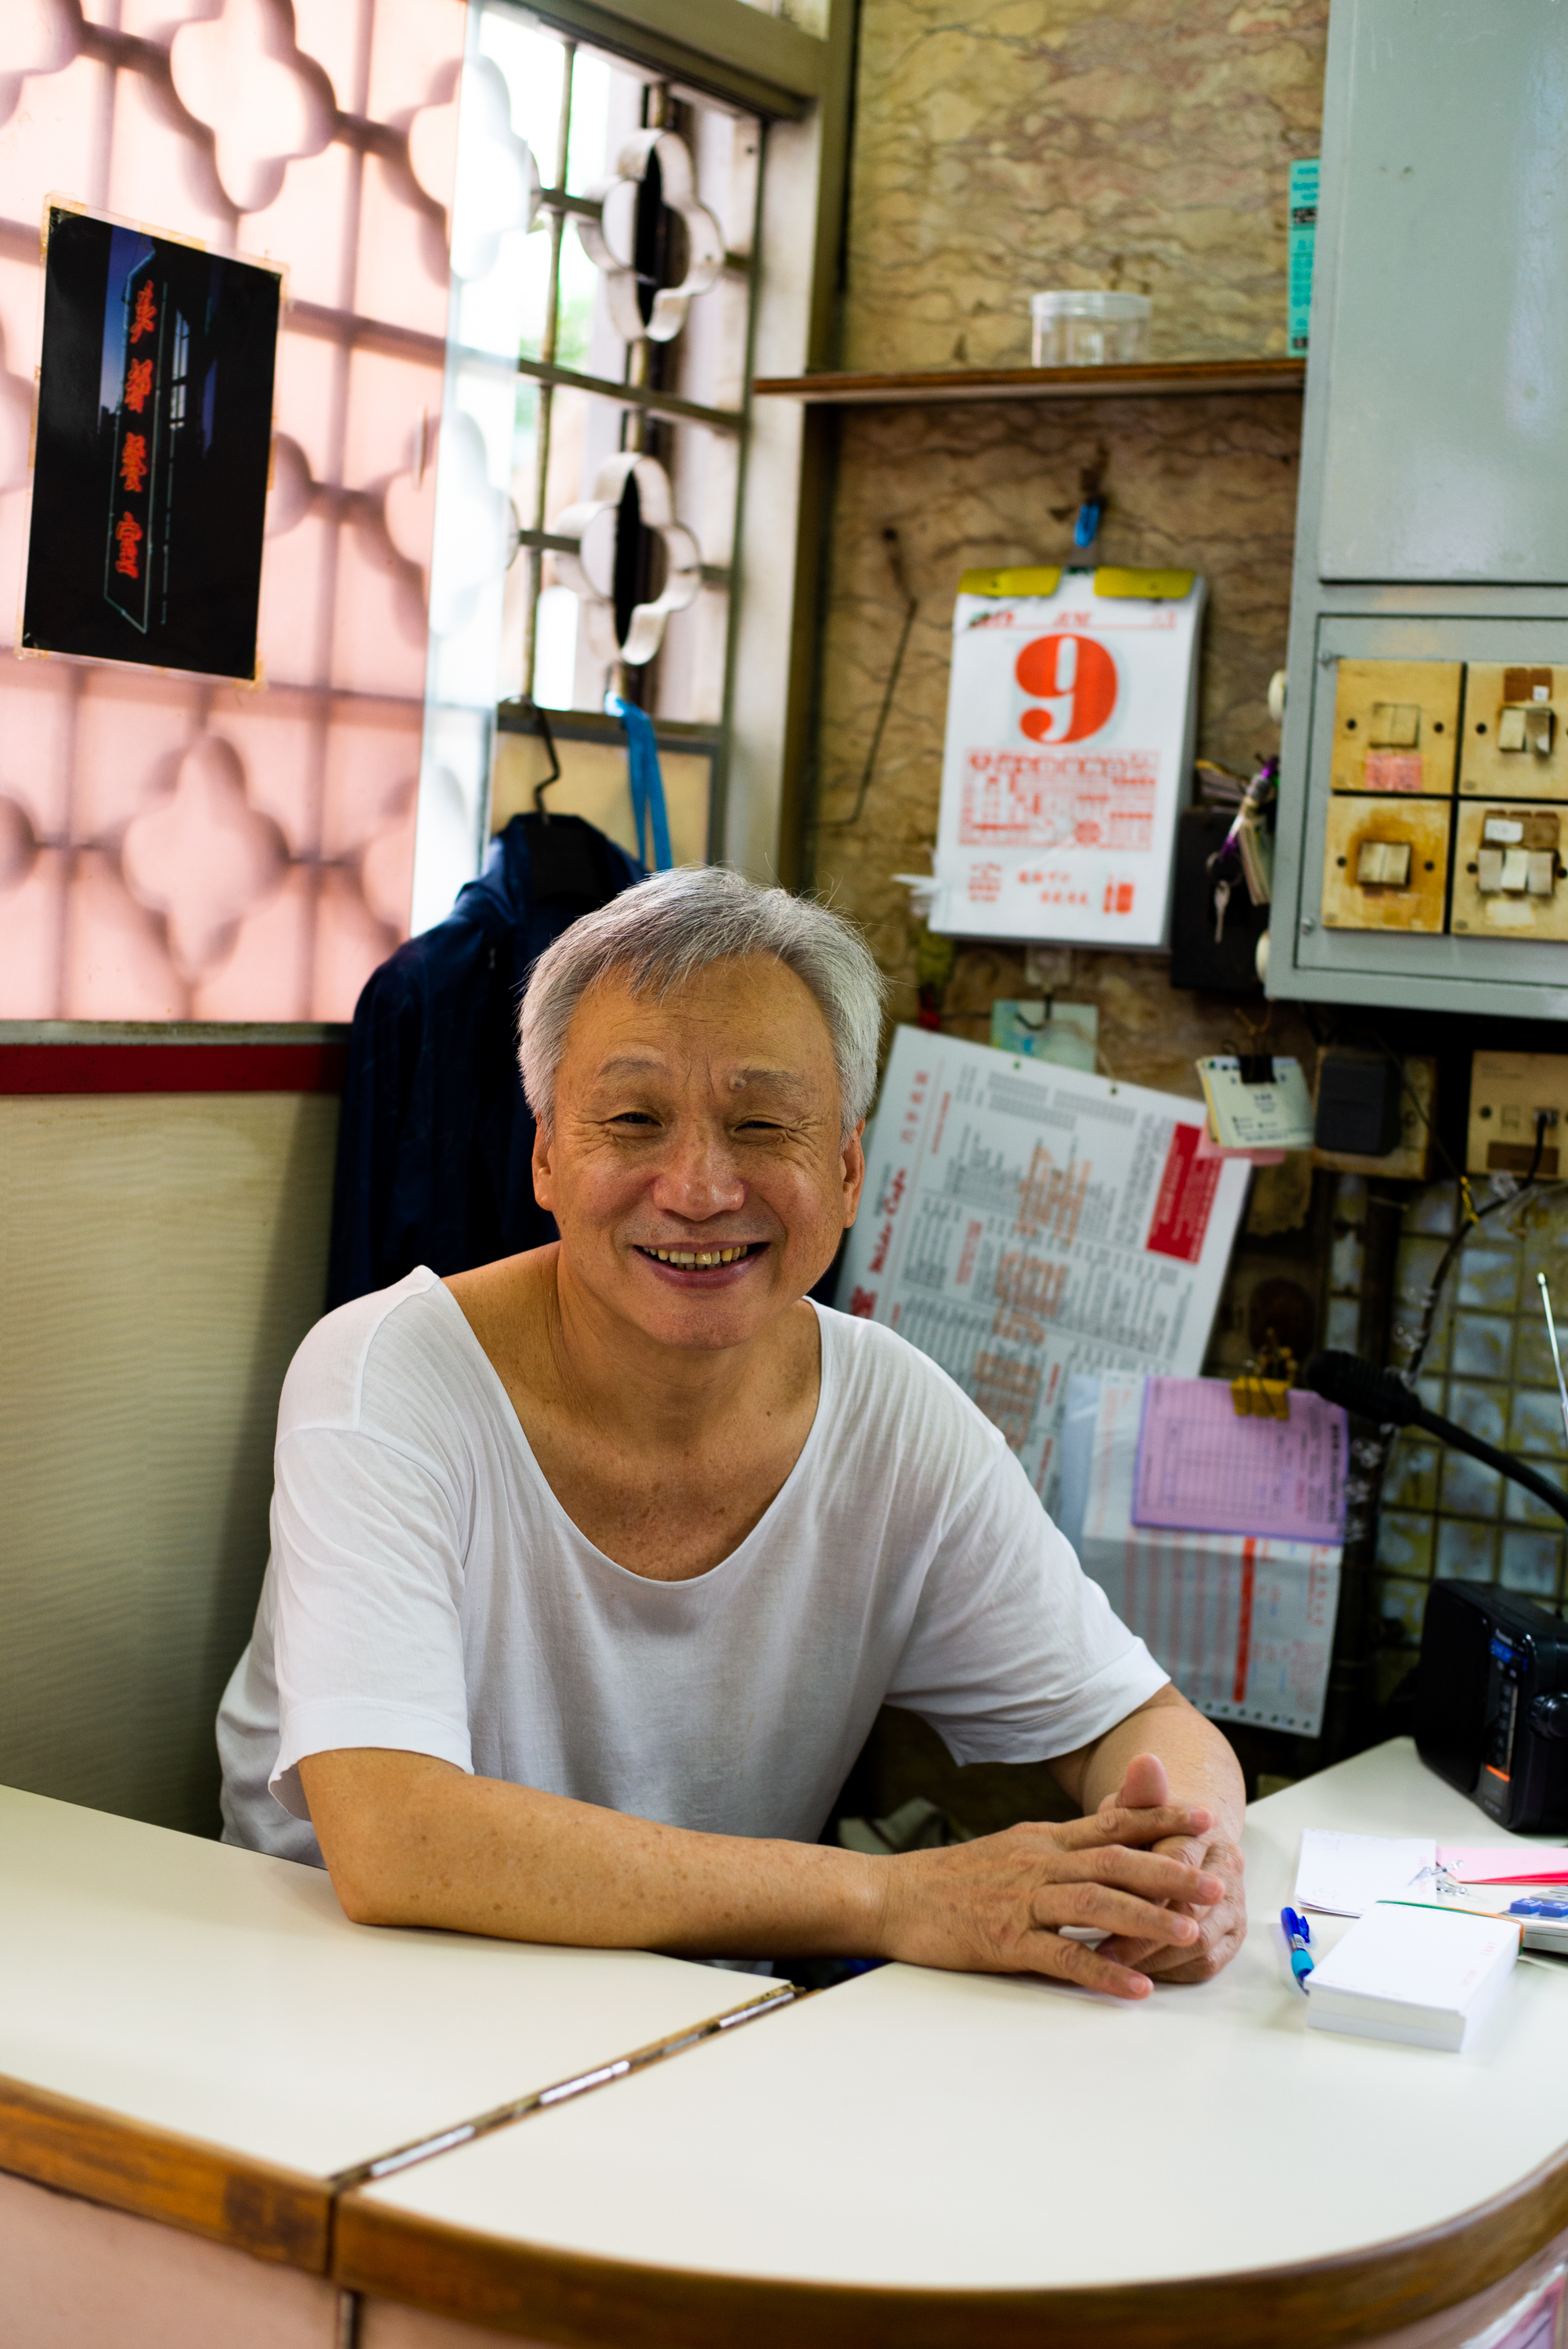 Owner of the Mido Cafe, Hong Kong, June 2019